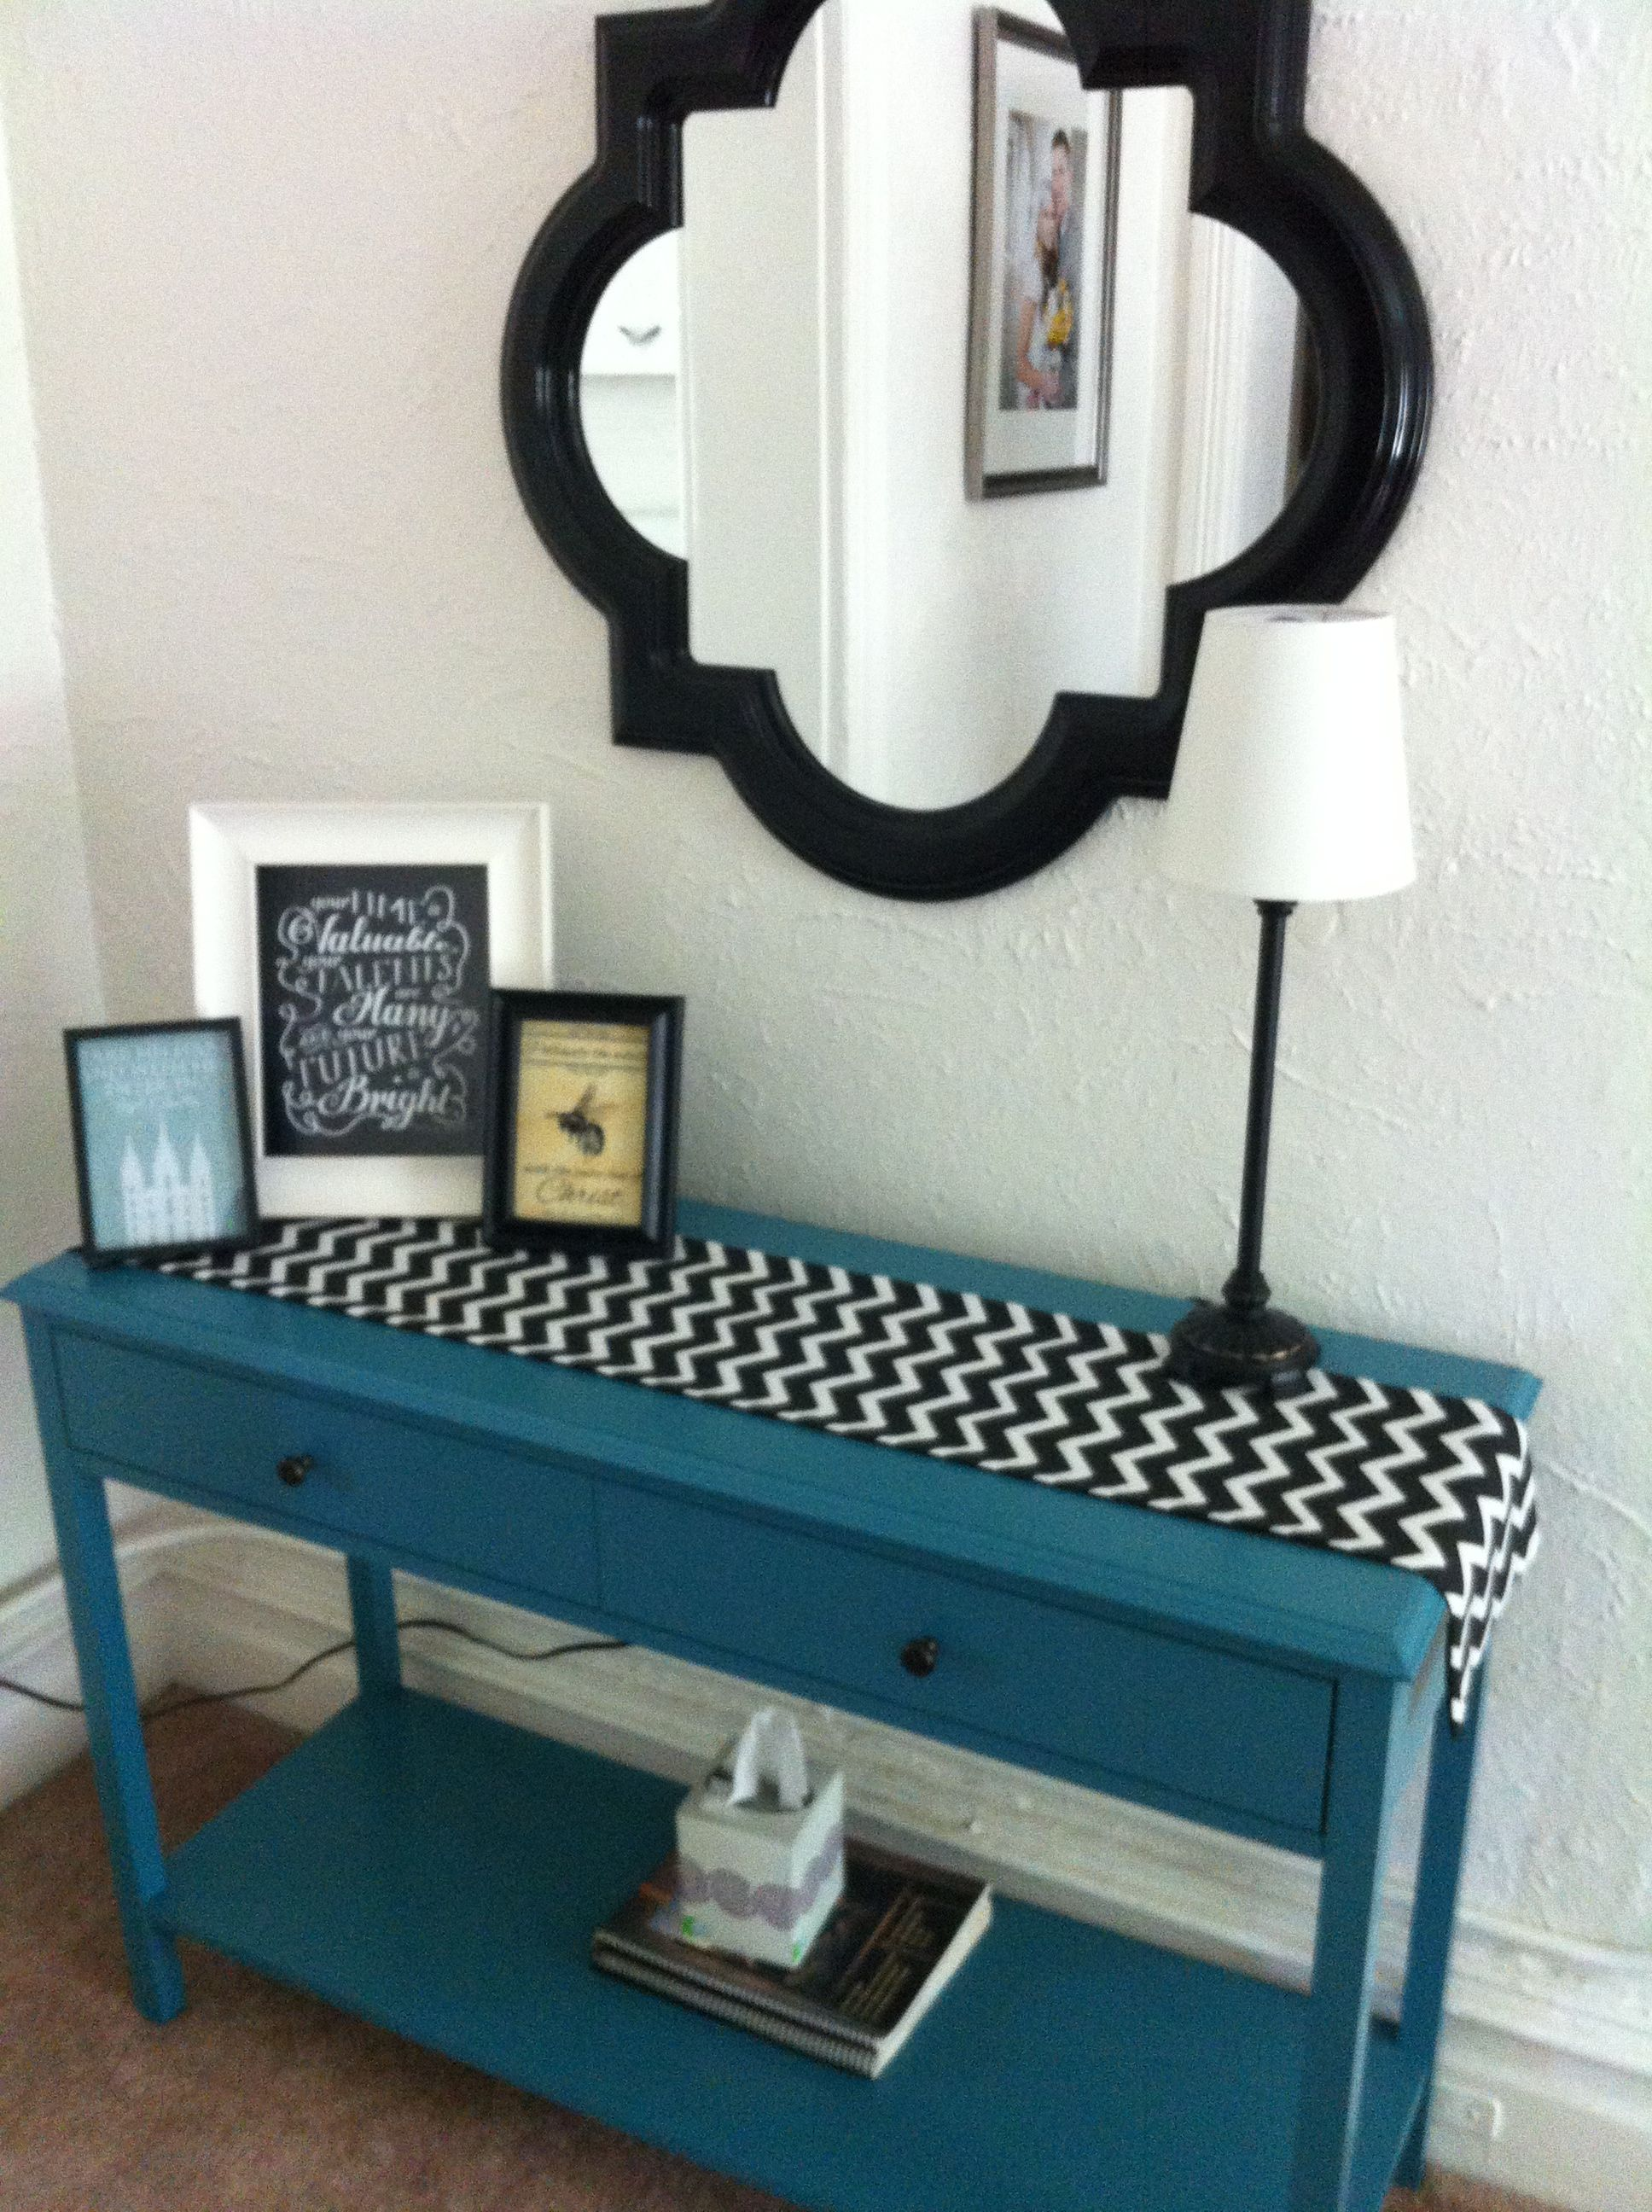 Hall table cheap home decor my creations pinterest Pinterest home decor hall